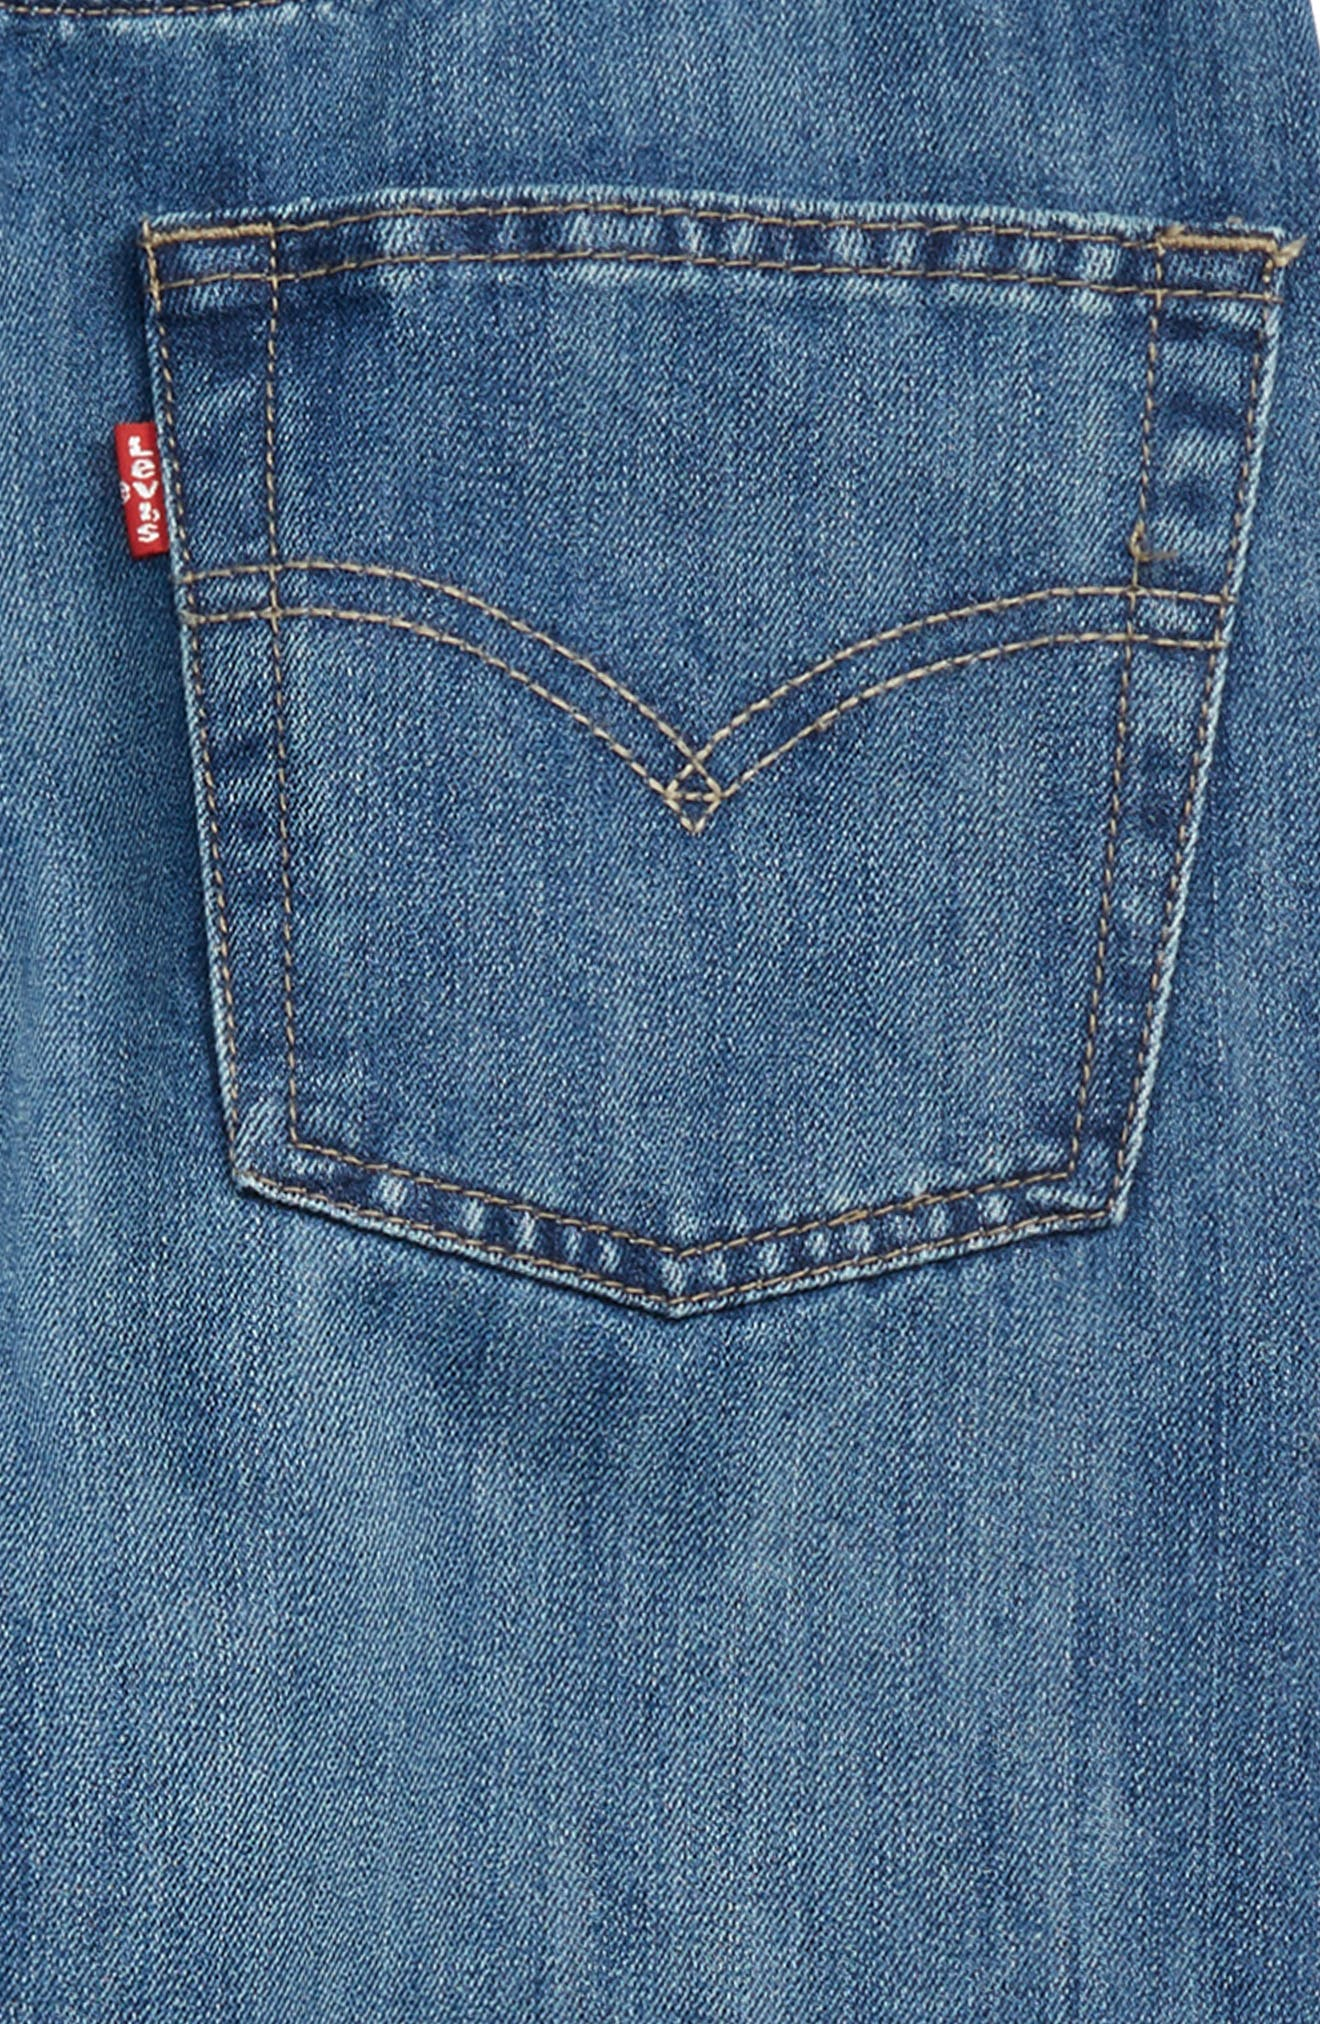 550<sup>™</sup> Relaxed Fit Jeans,                             Alternate thumbnail 3, color,                             426